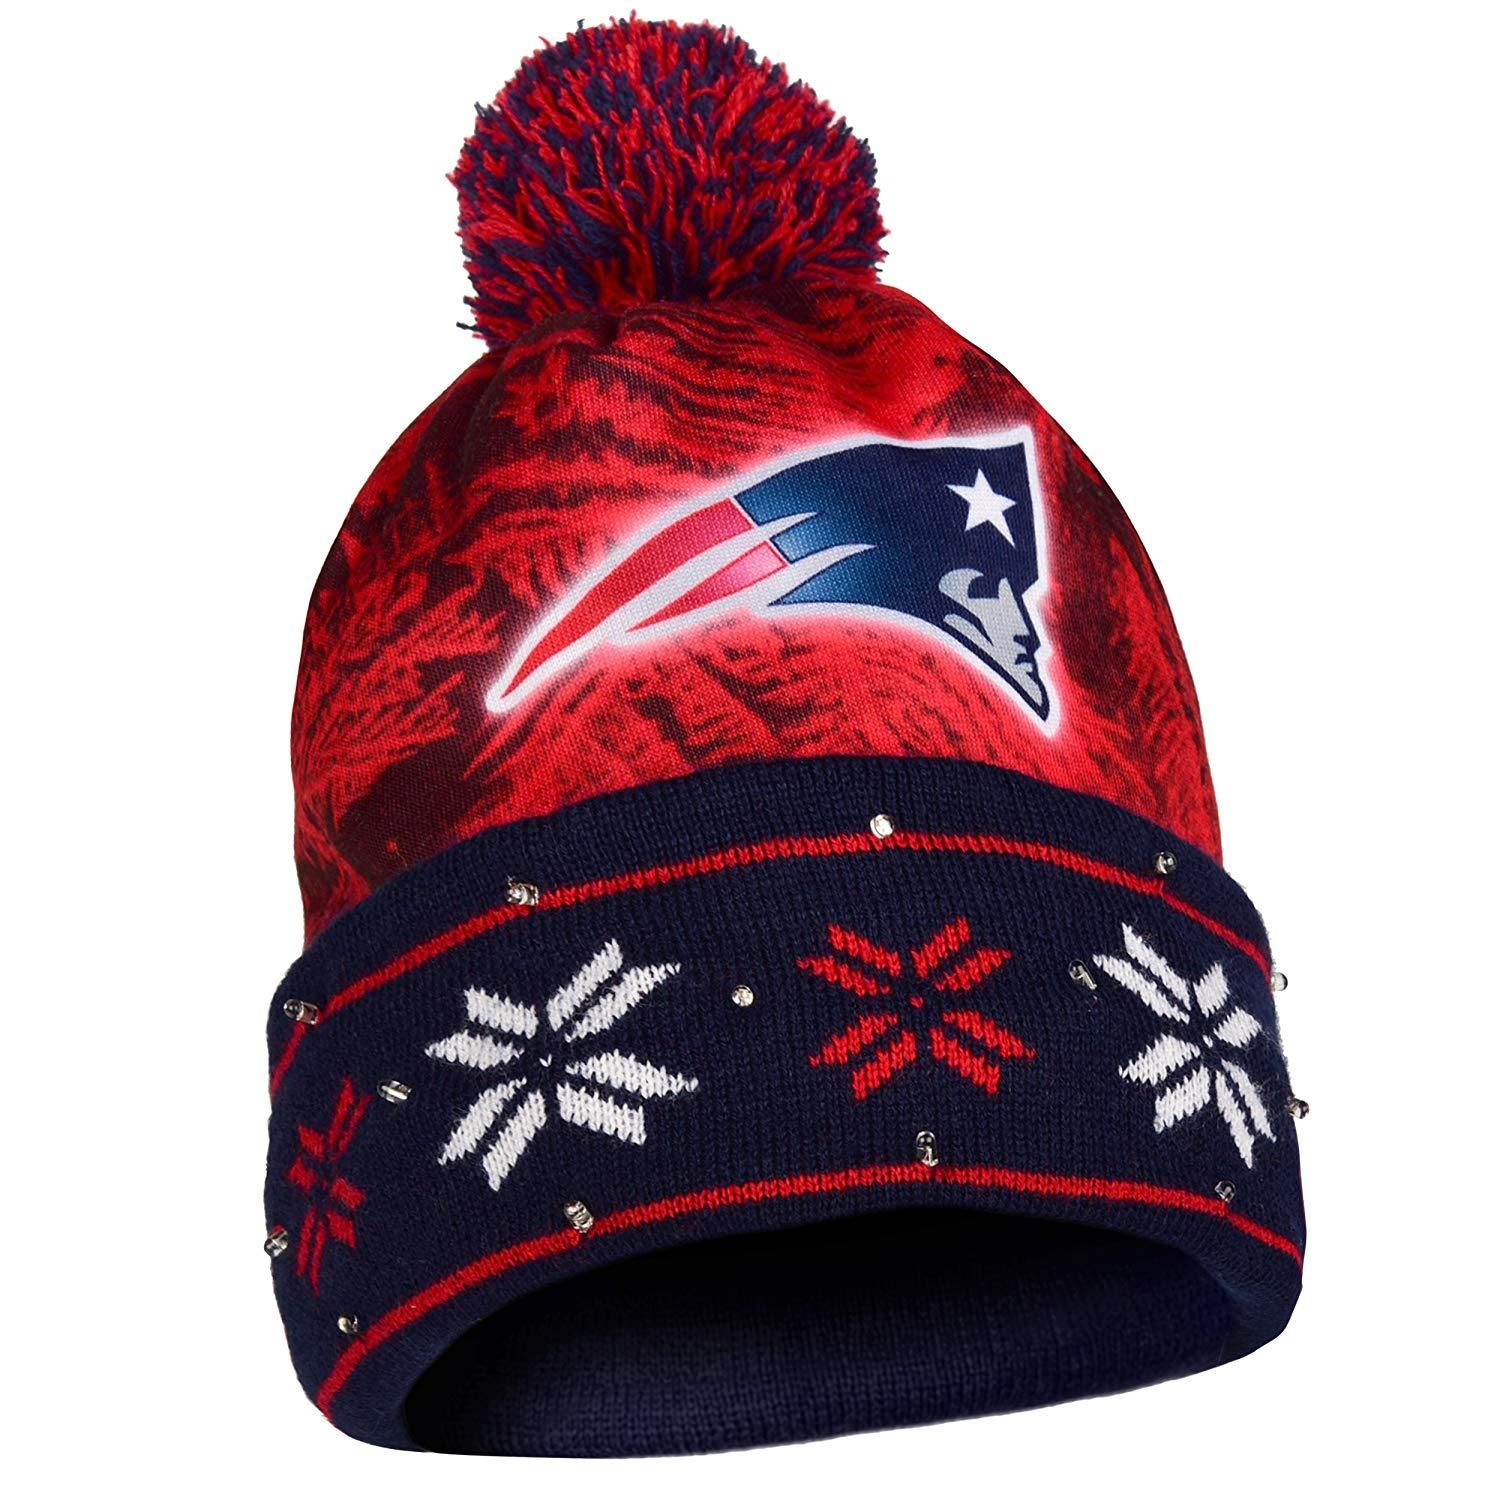 New England Patriots Big Logo Light Up Printed Beanie Knit Cap In 2020 New England Patriots Knit Cap Beanie